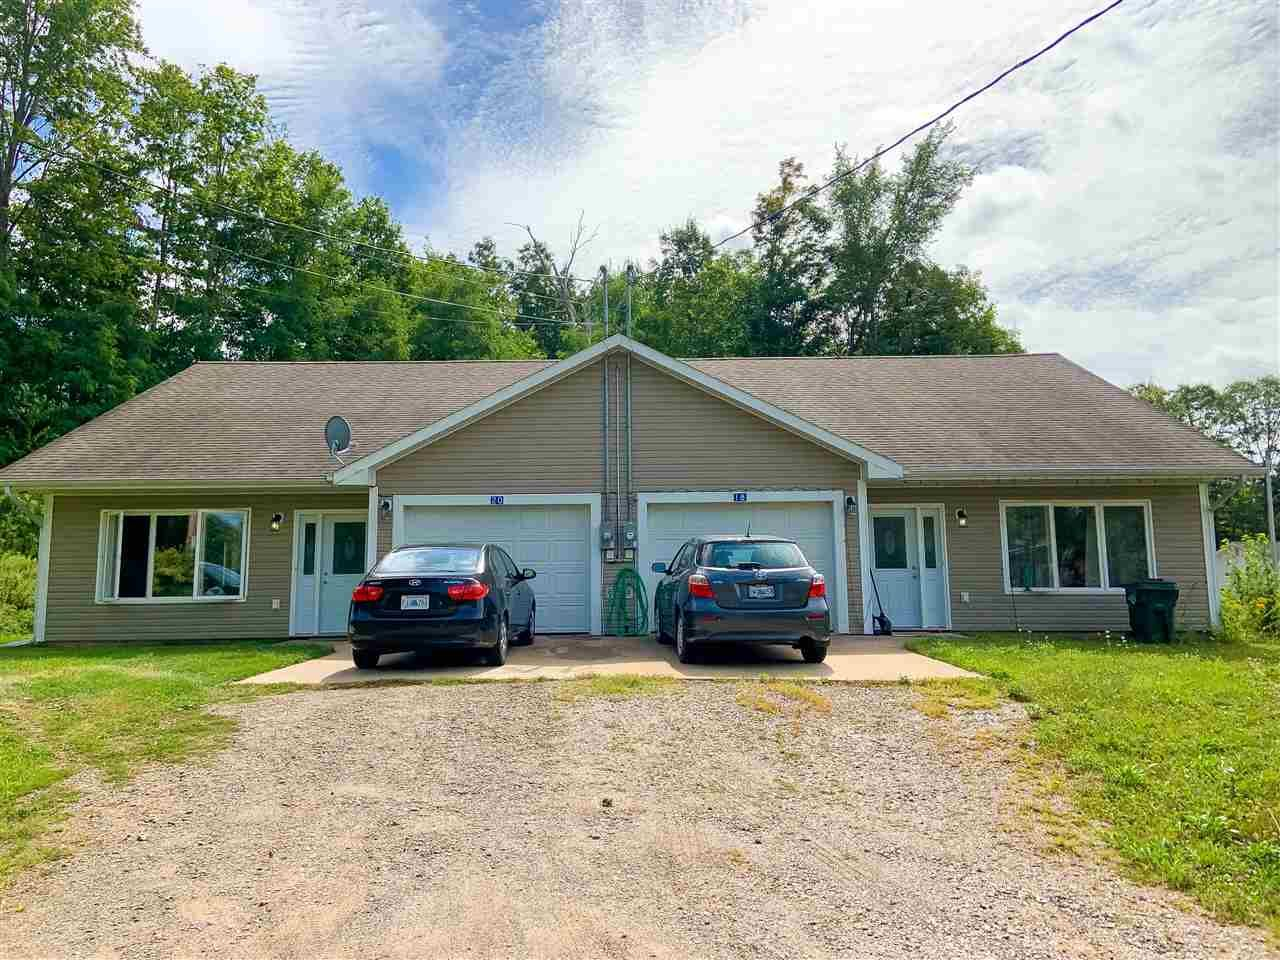 Main Photo: 18/20 Sunnyside Road in Greenwich: 404-Kings County Multi-Family for sale (Annapolis Valley)  : MLS®# 202018911